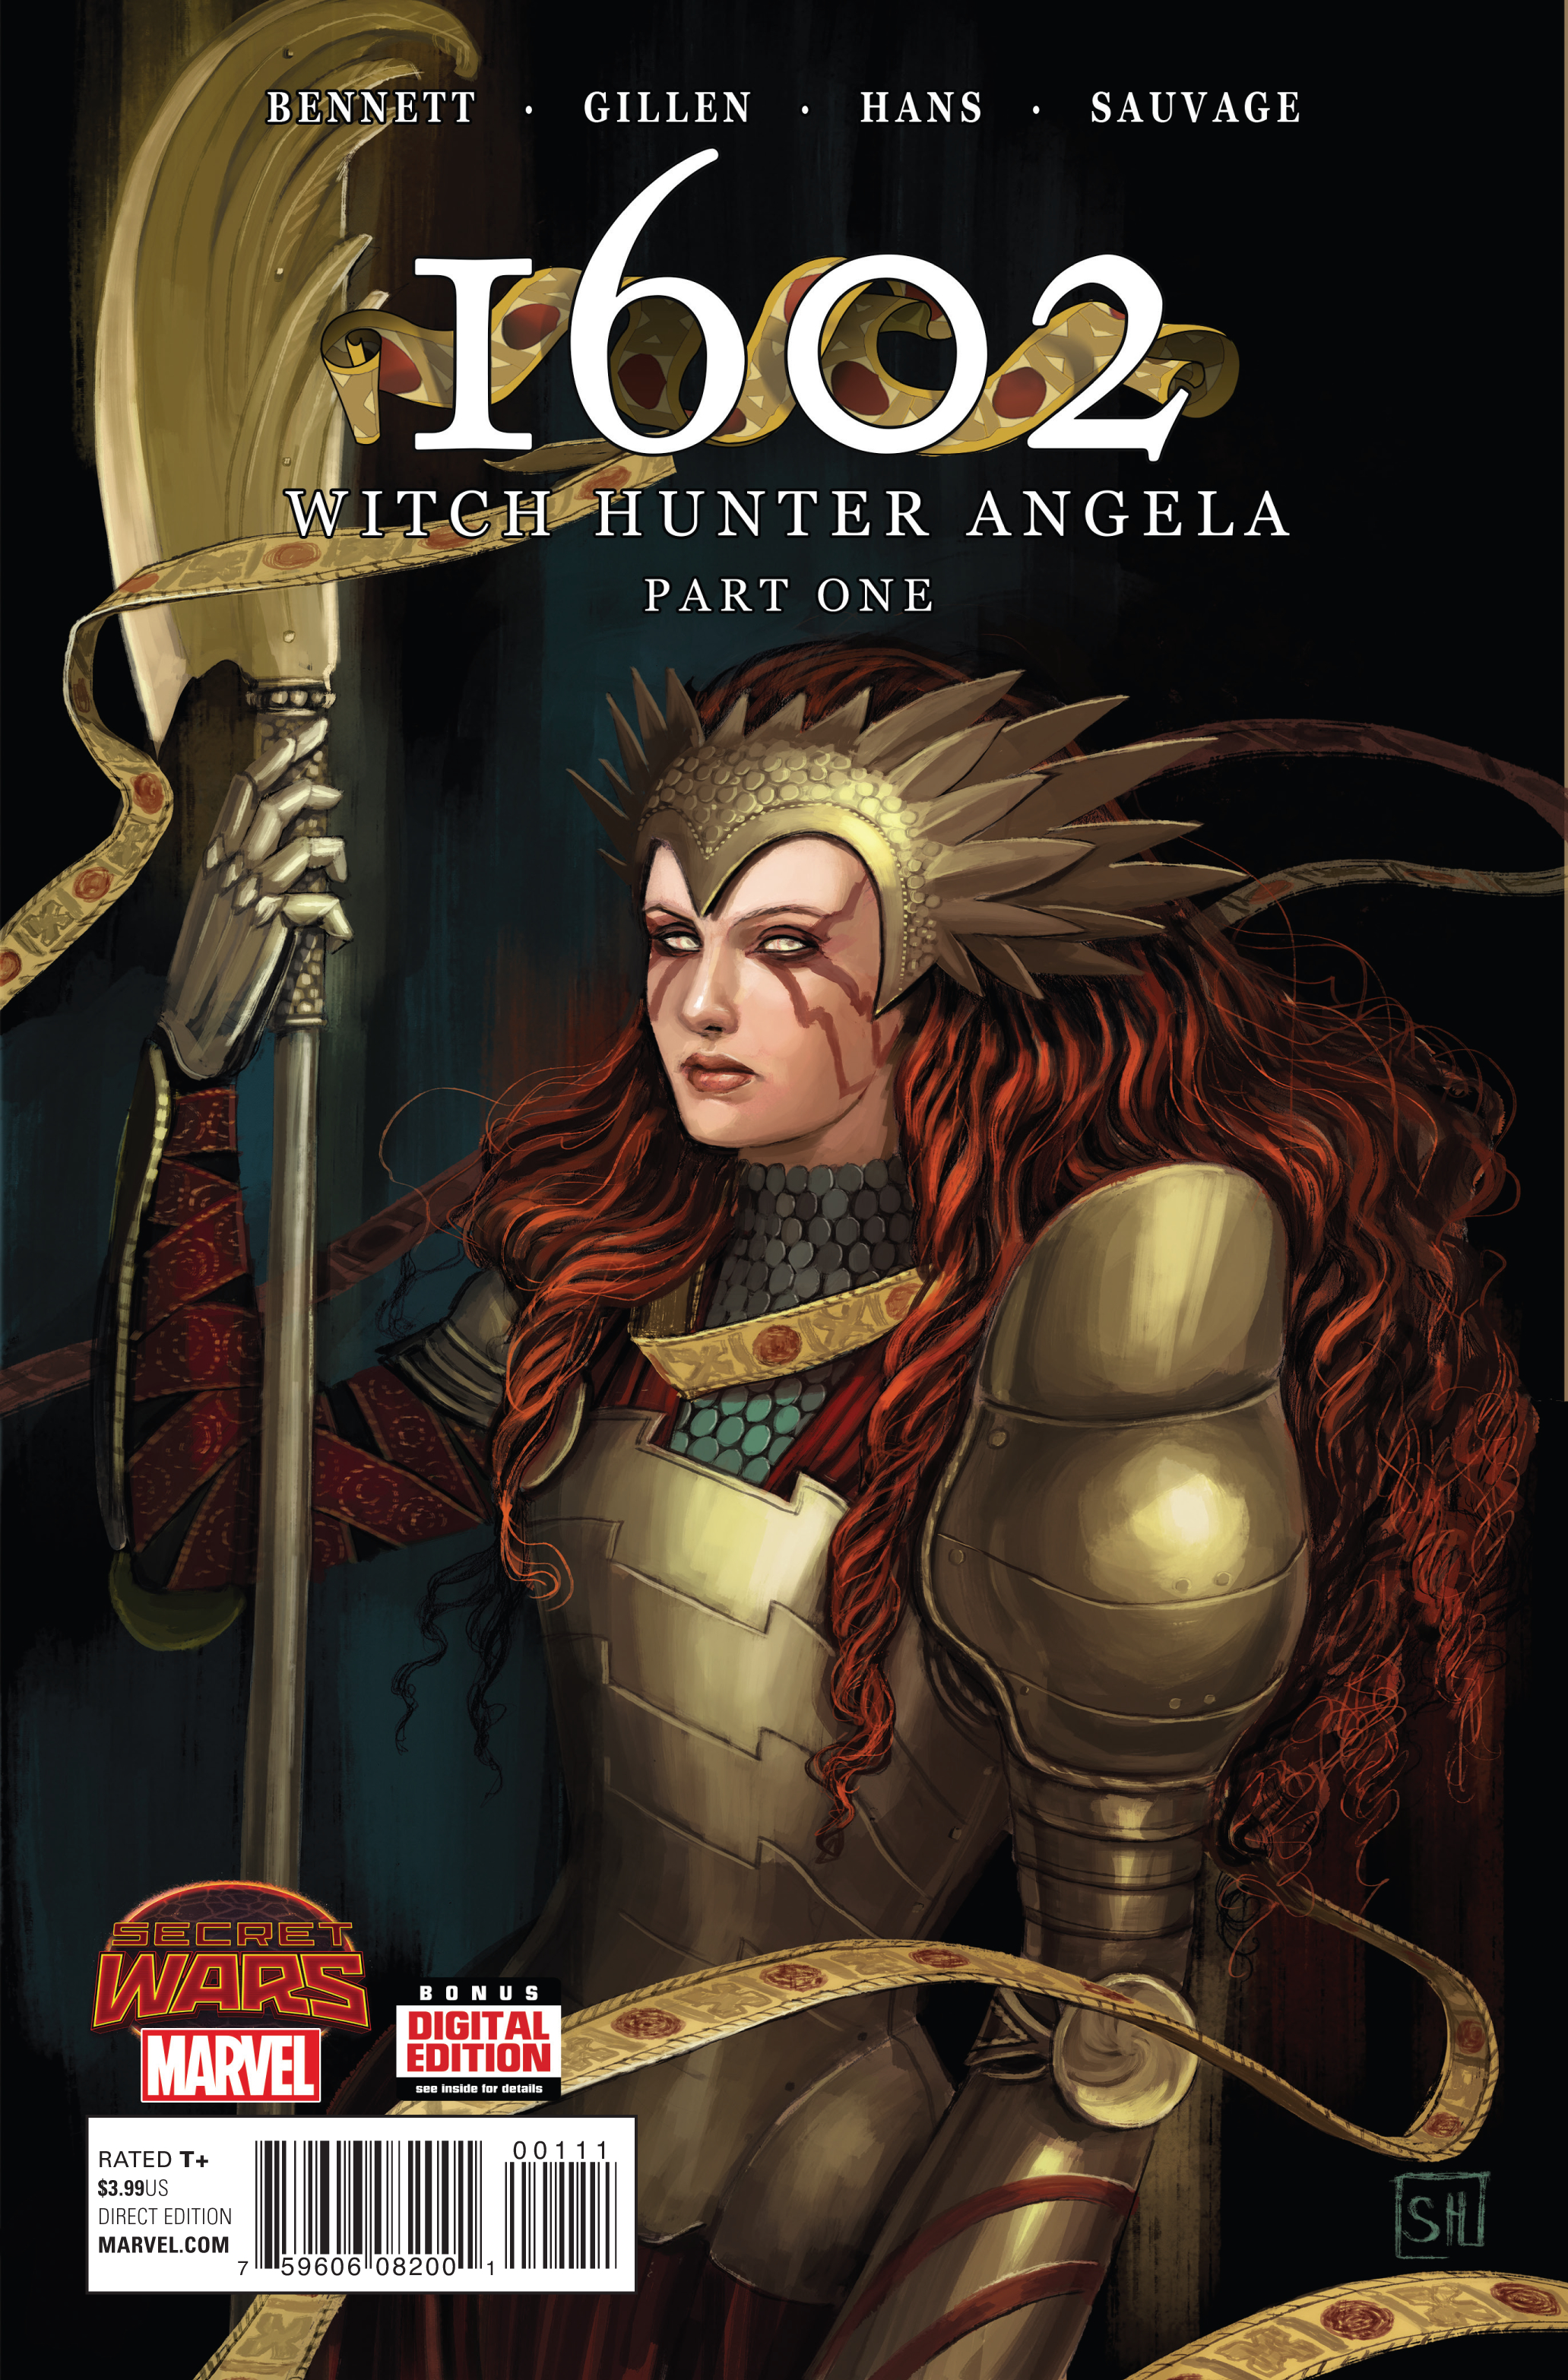 1602 WITCH HUNTER ANGELA #1 SWA